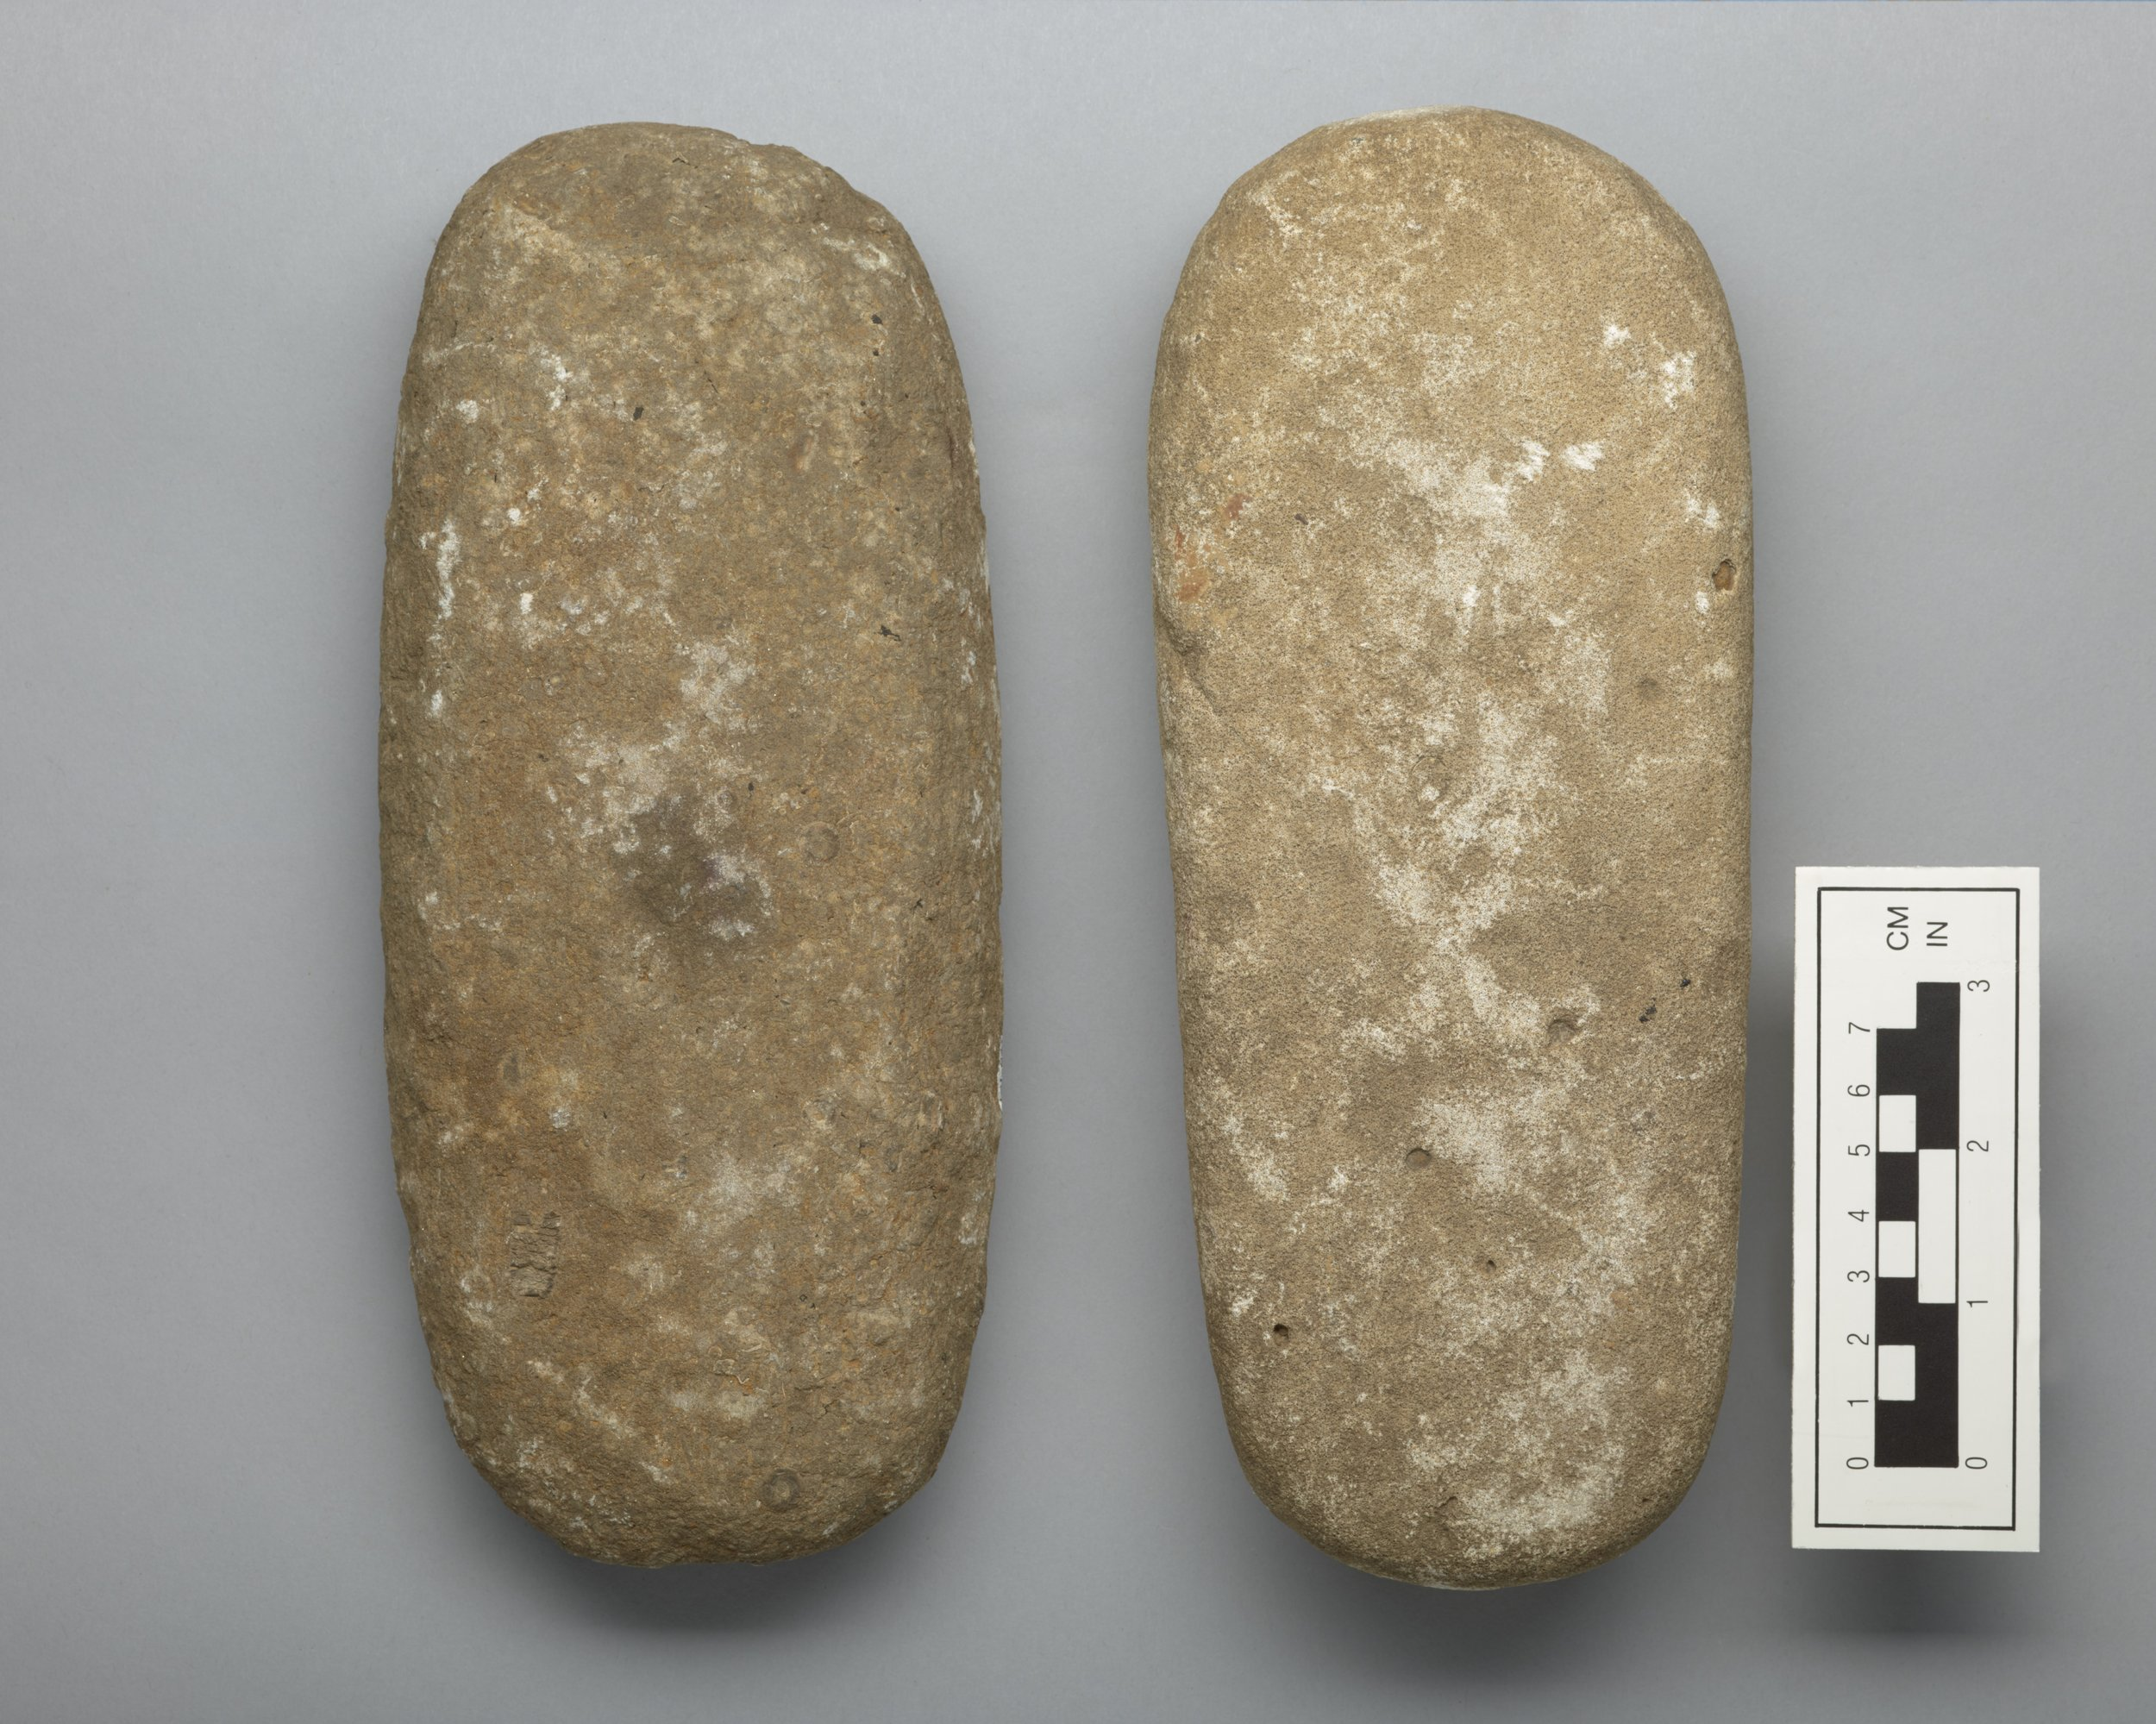 Manos from the Neodesha Fort Site, 14WN1 - 3